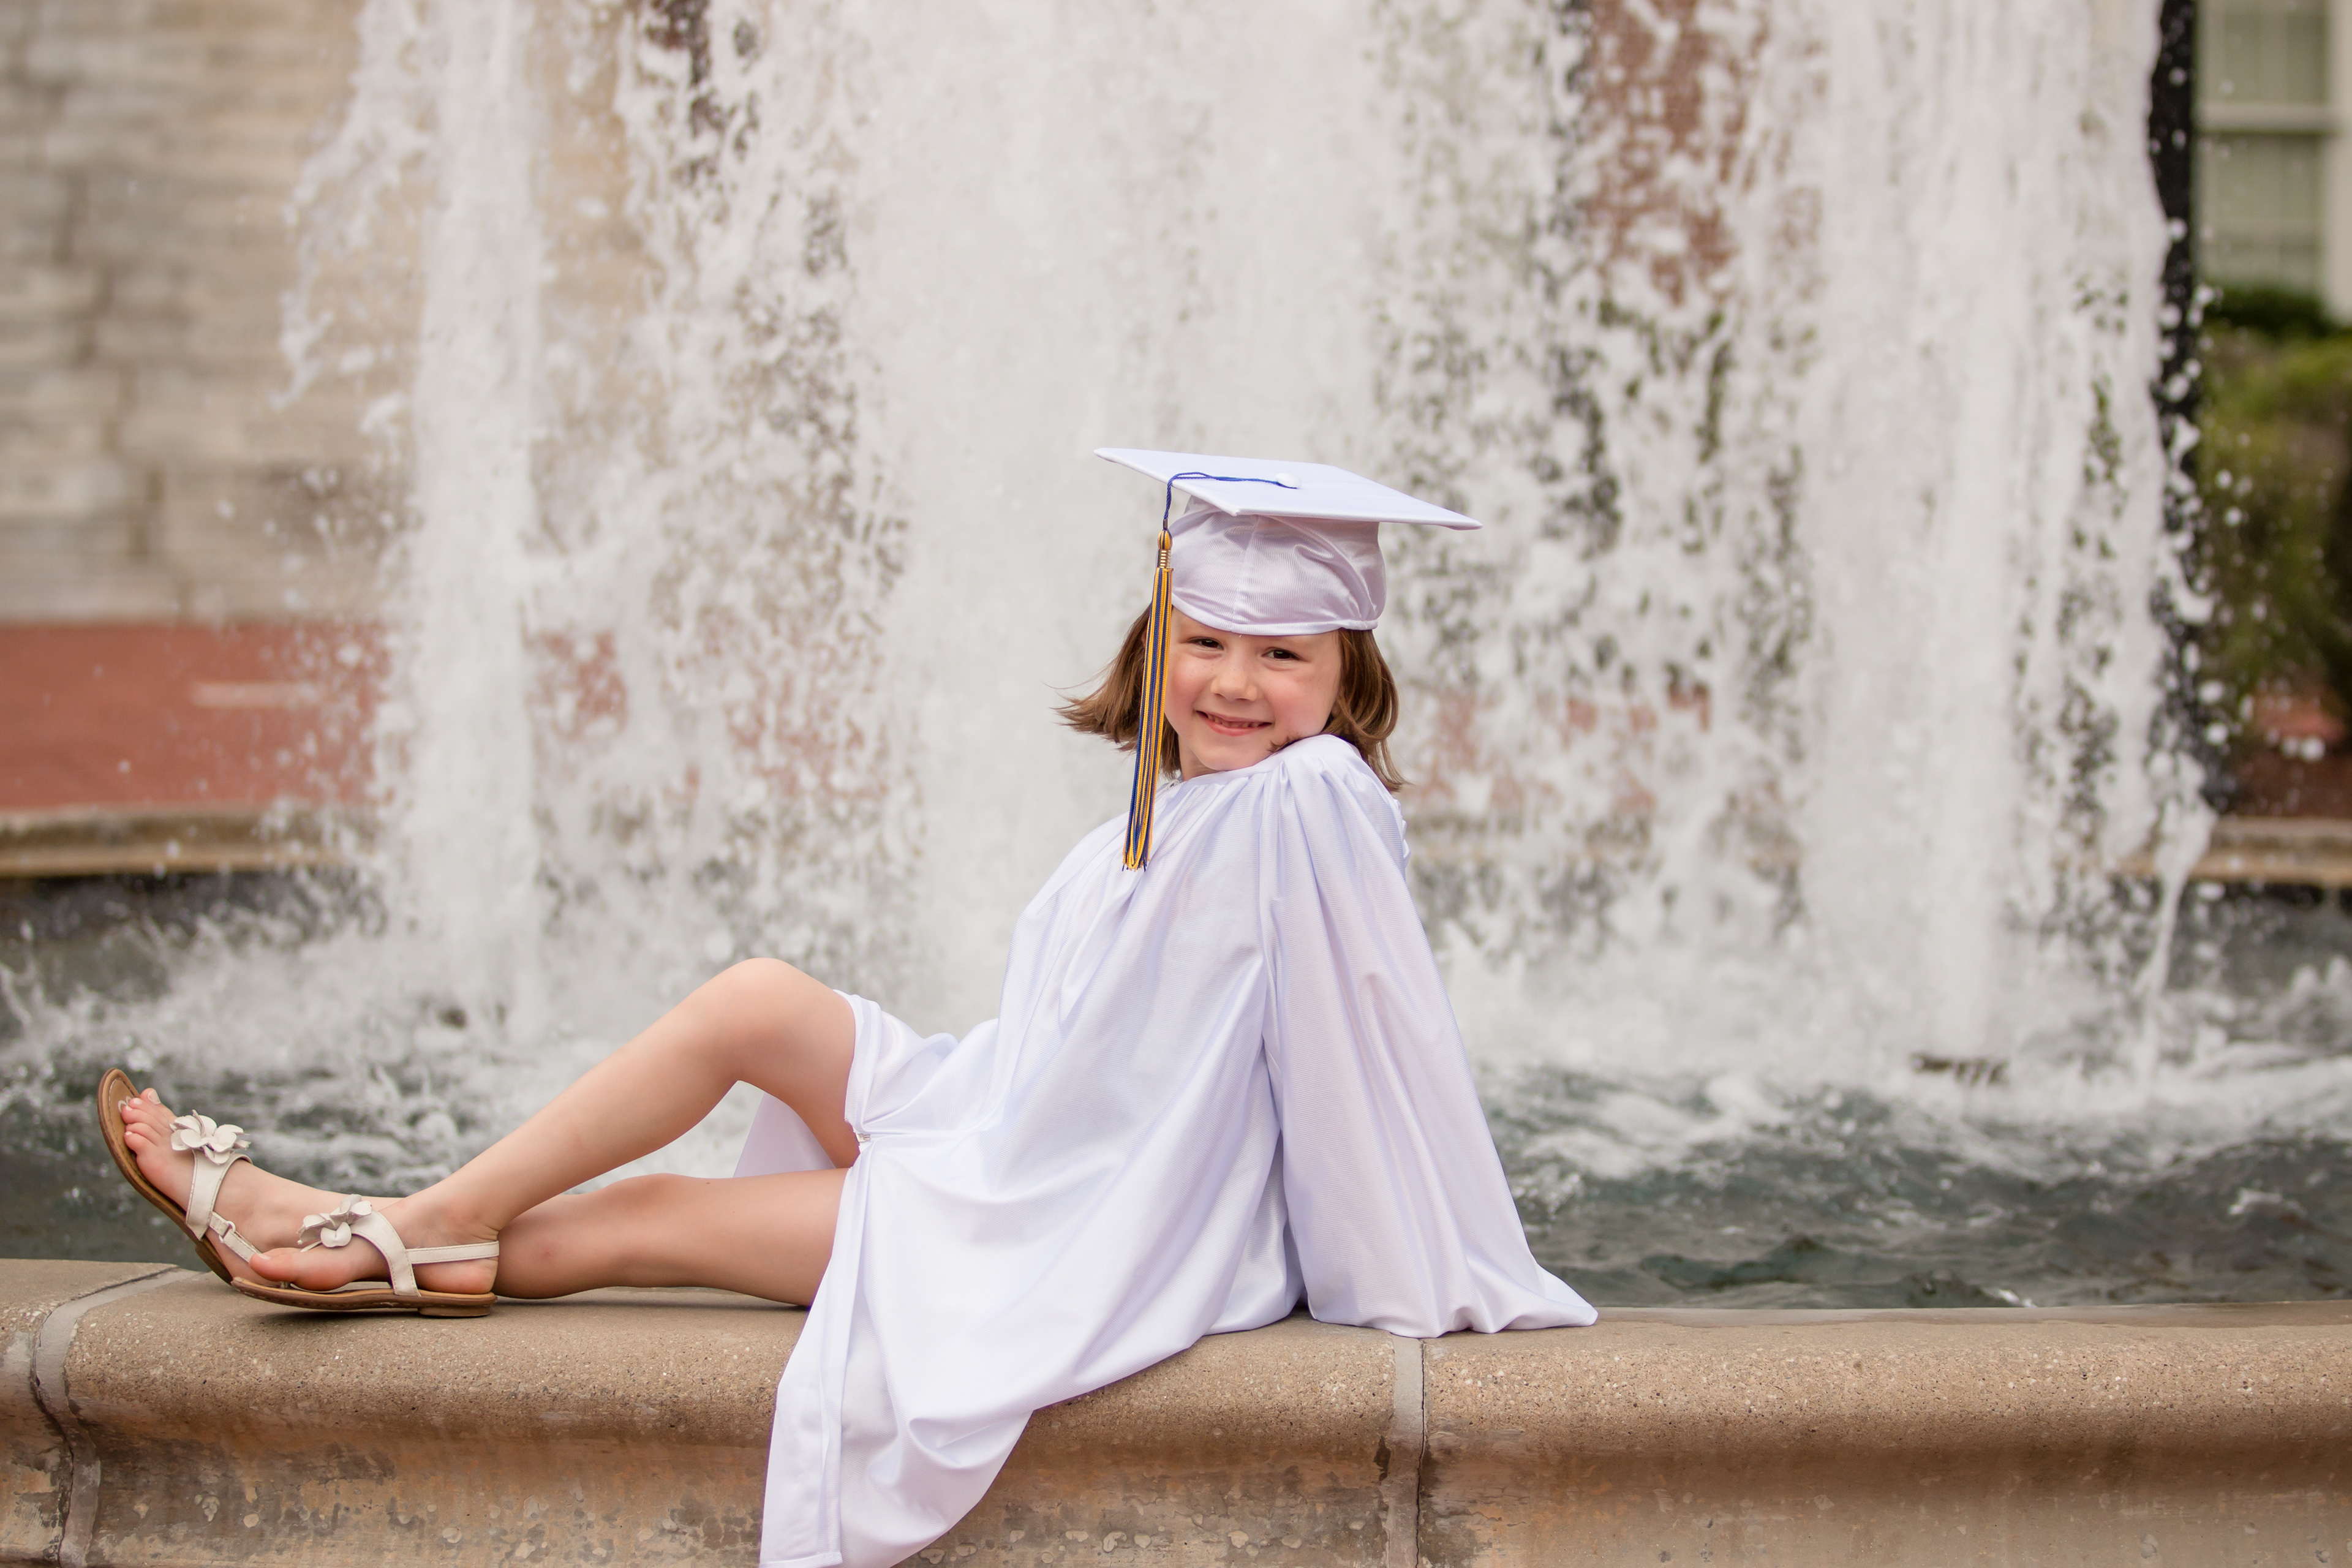 Cap And Gown For Kindergarten - Kindergarten is a huge step in your little ones life celebrate it with a casual cap gown session to cherish these memories forever